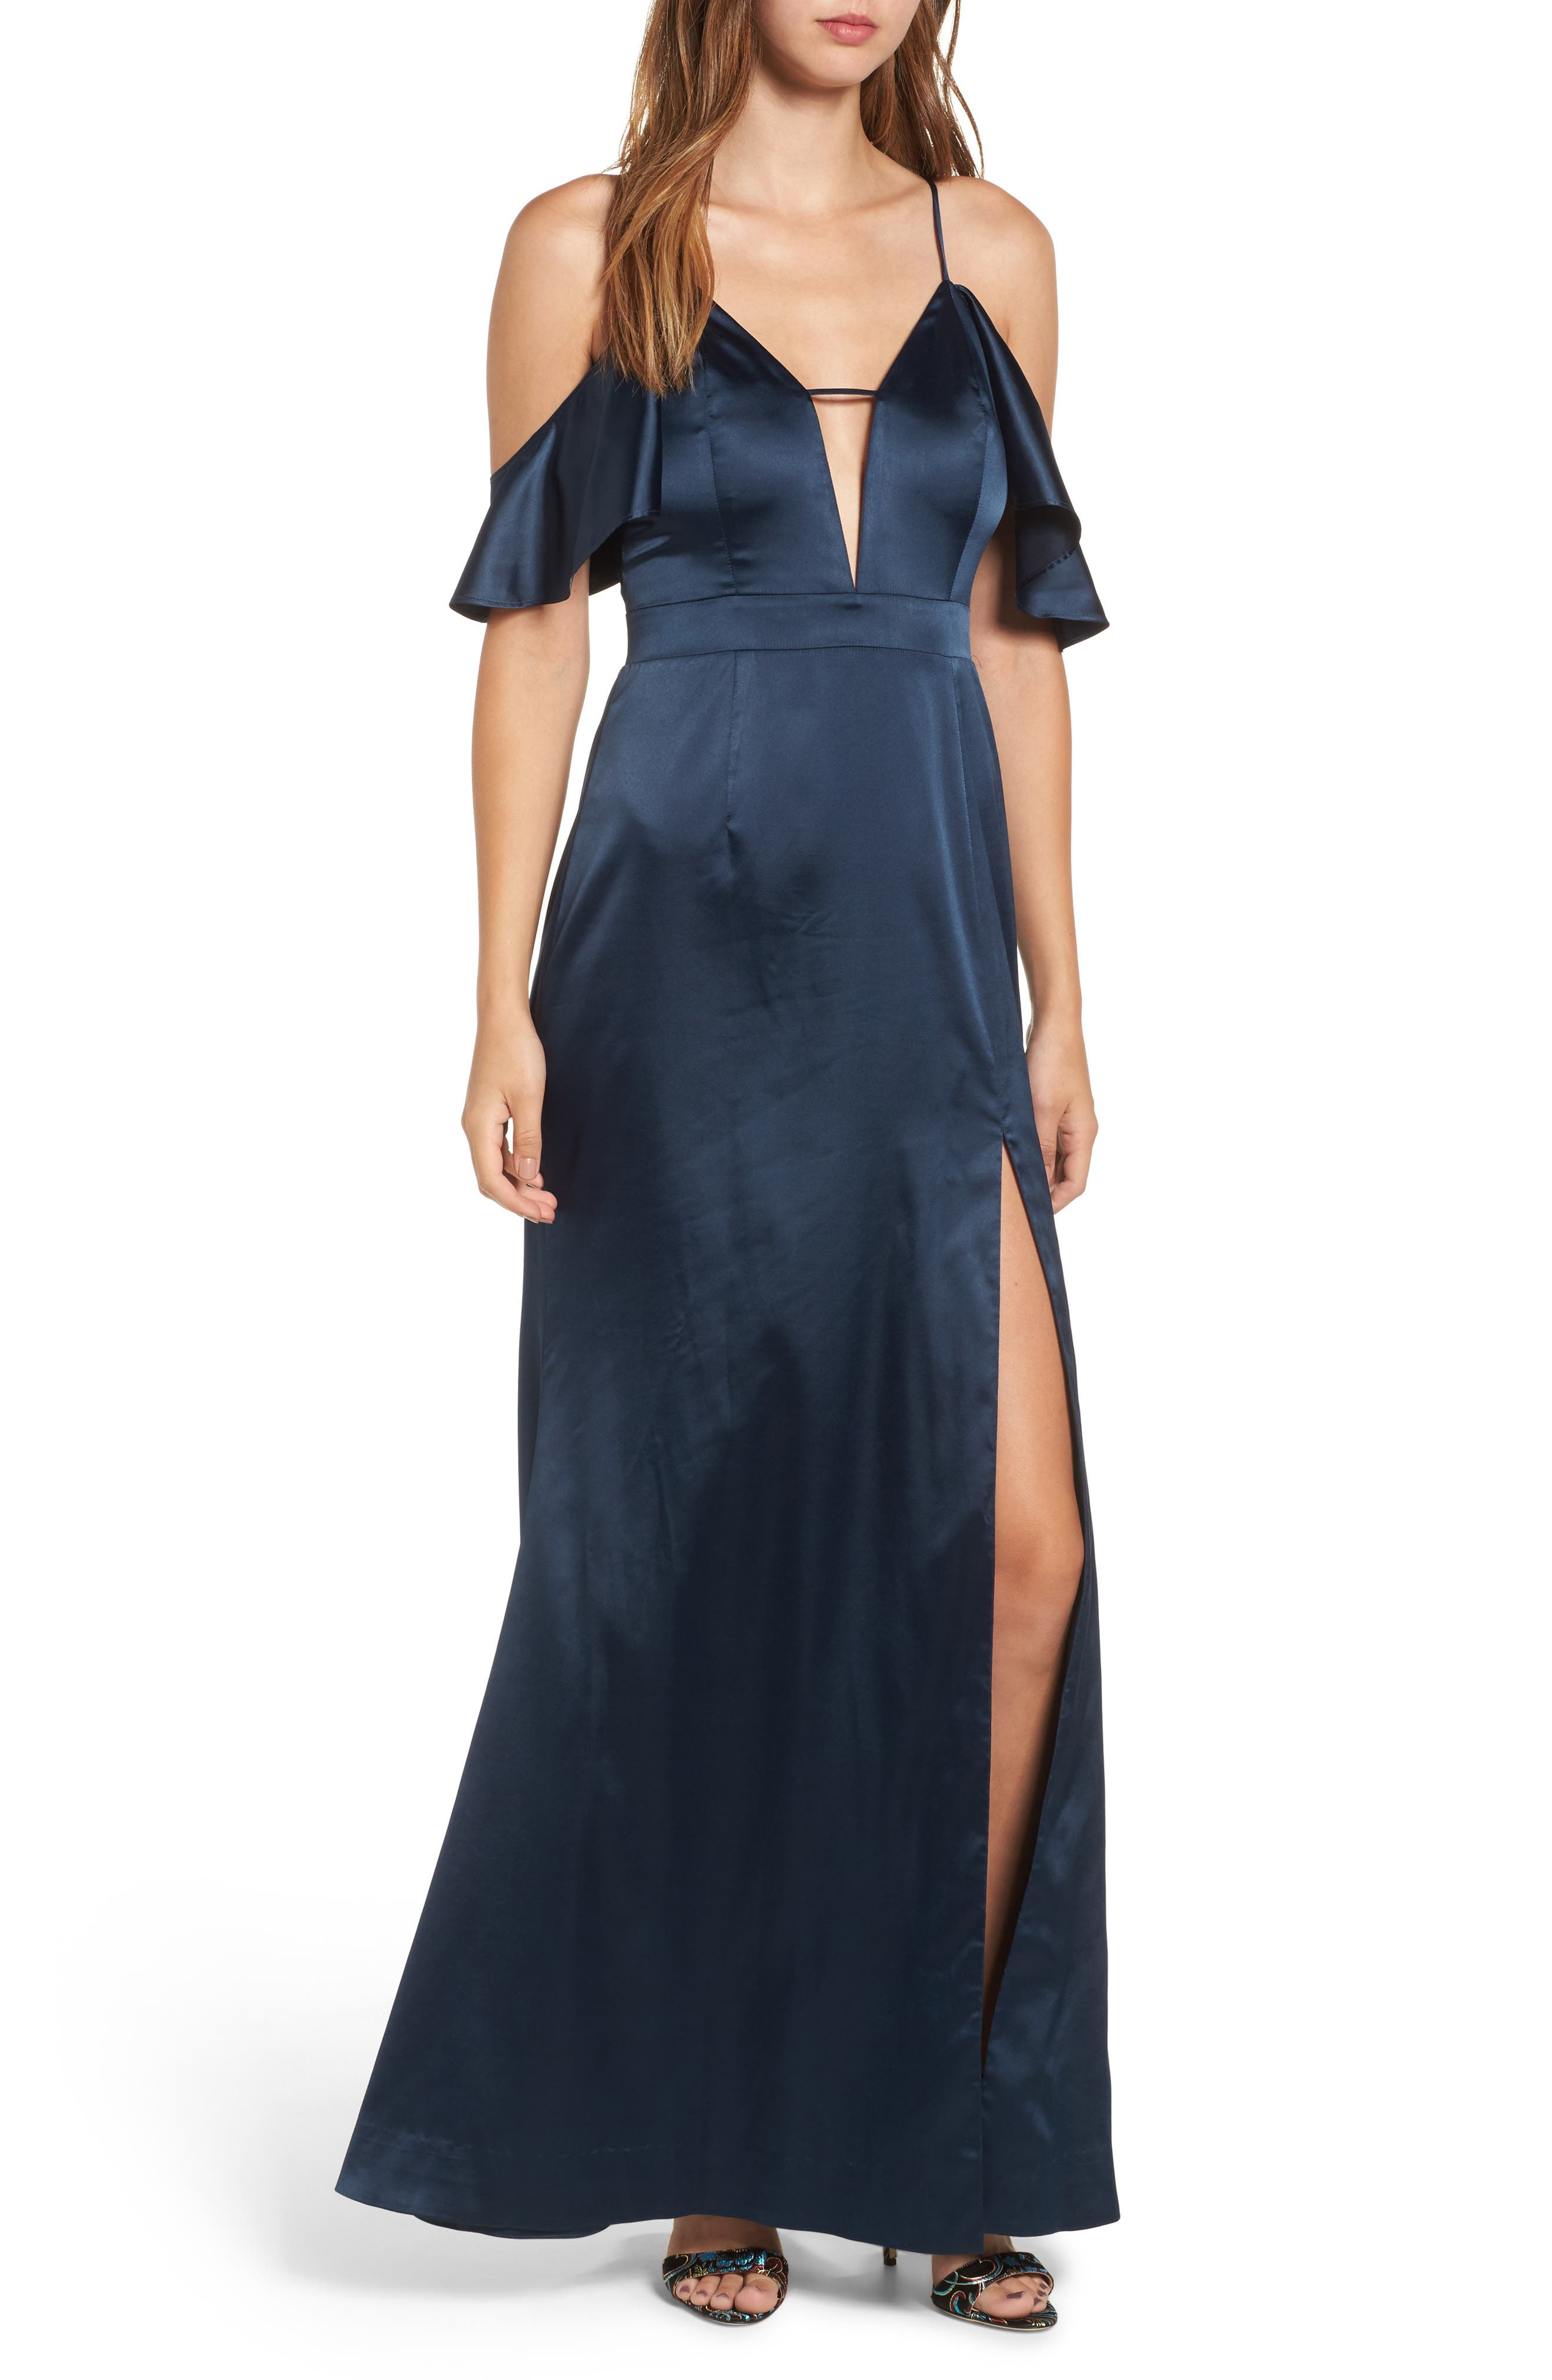 Main Image - NBD Niaa Cold Shoulder Gown